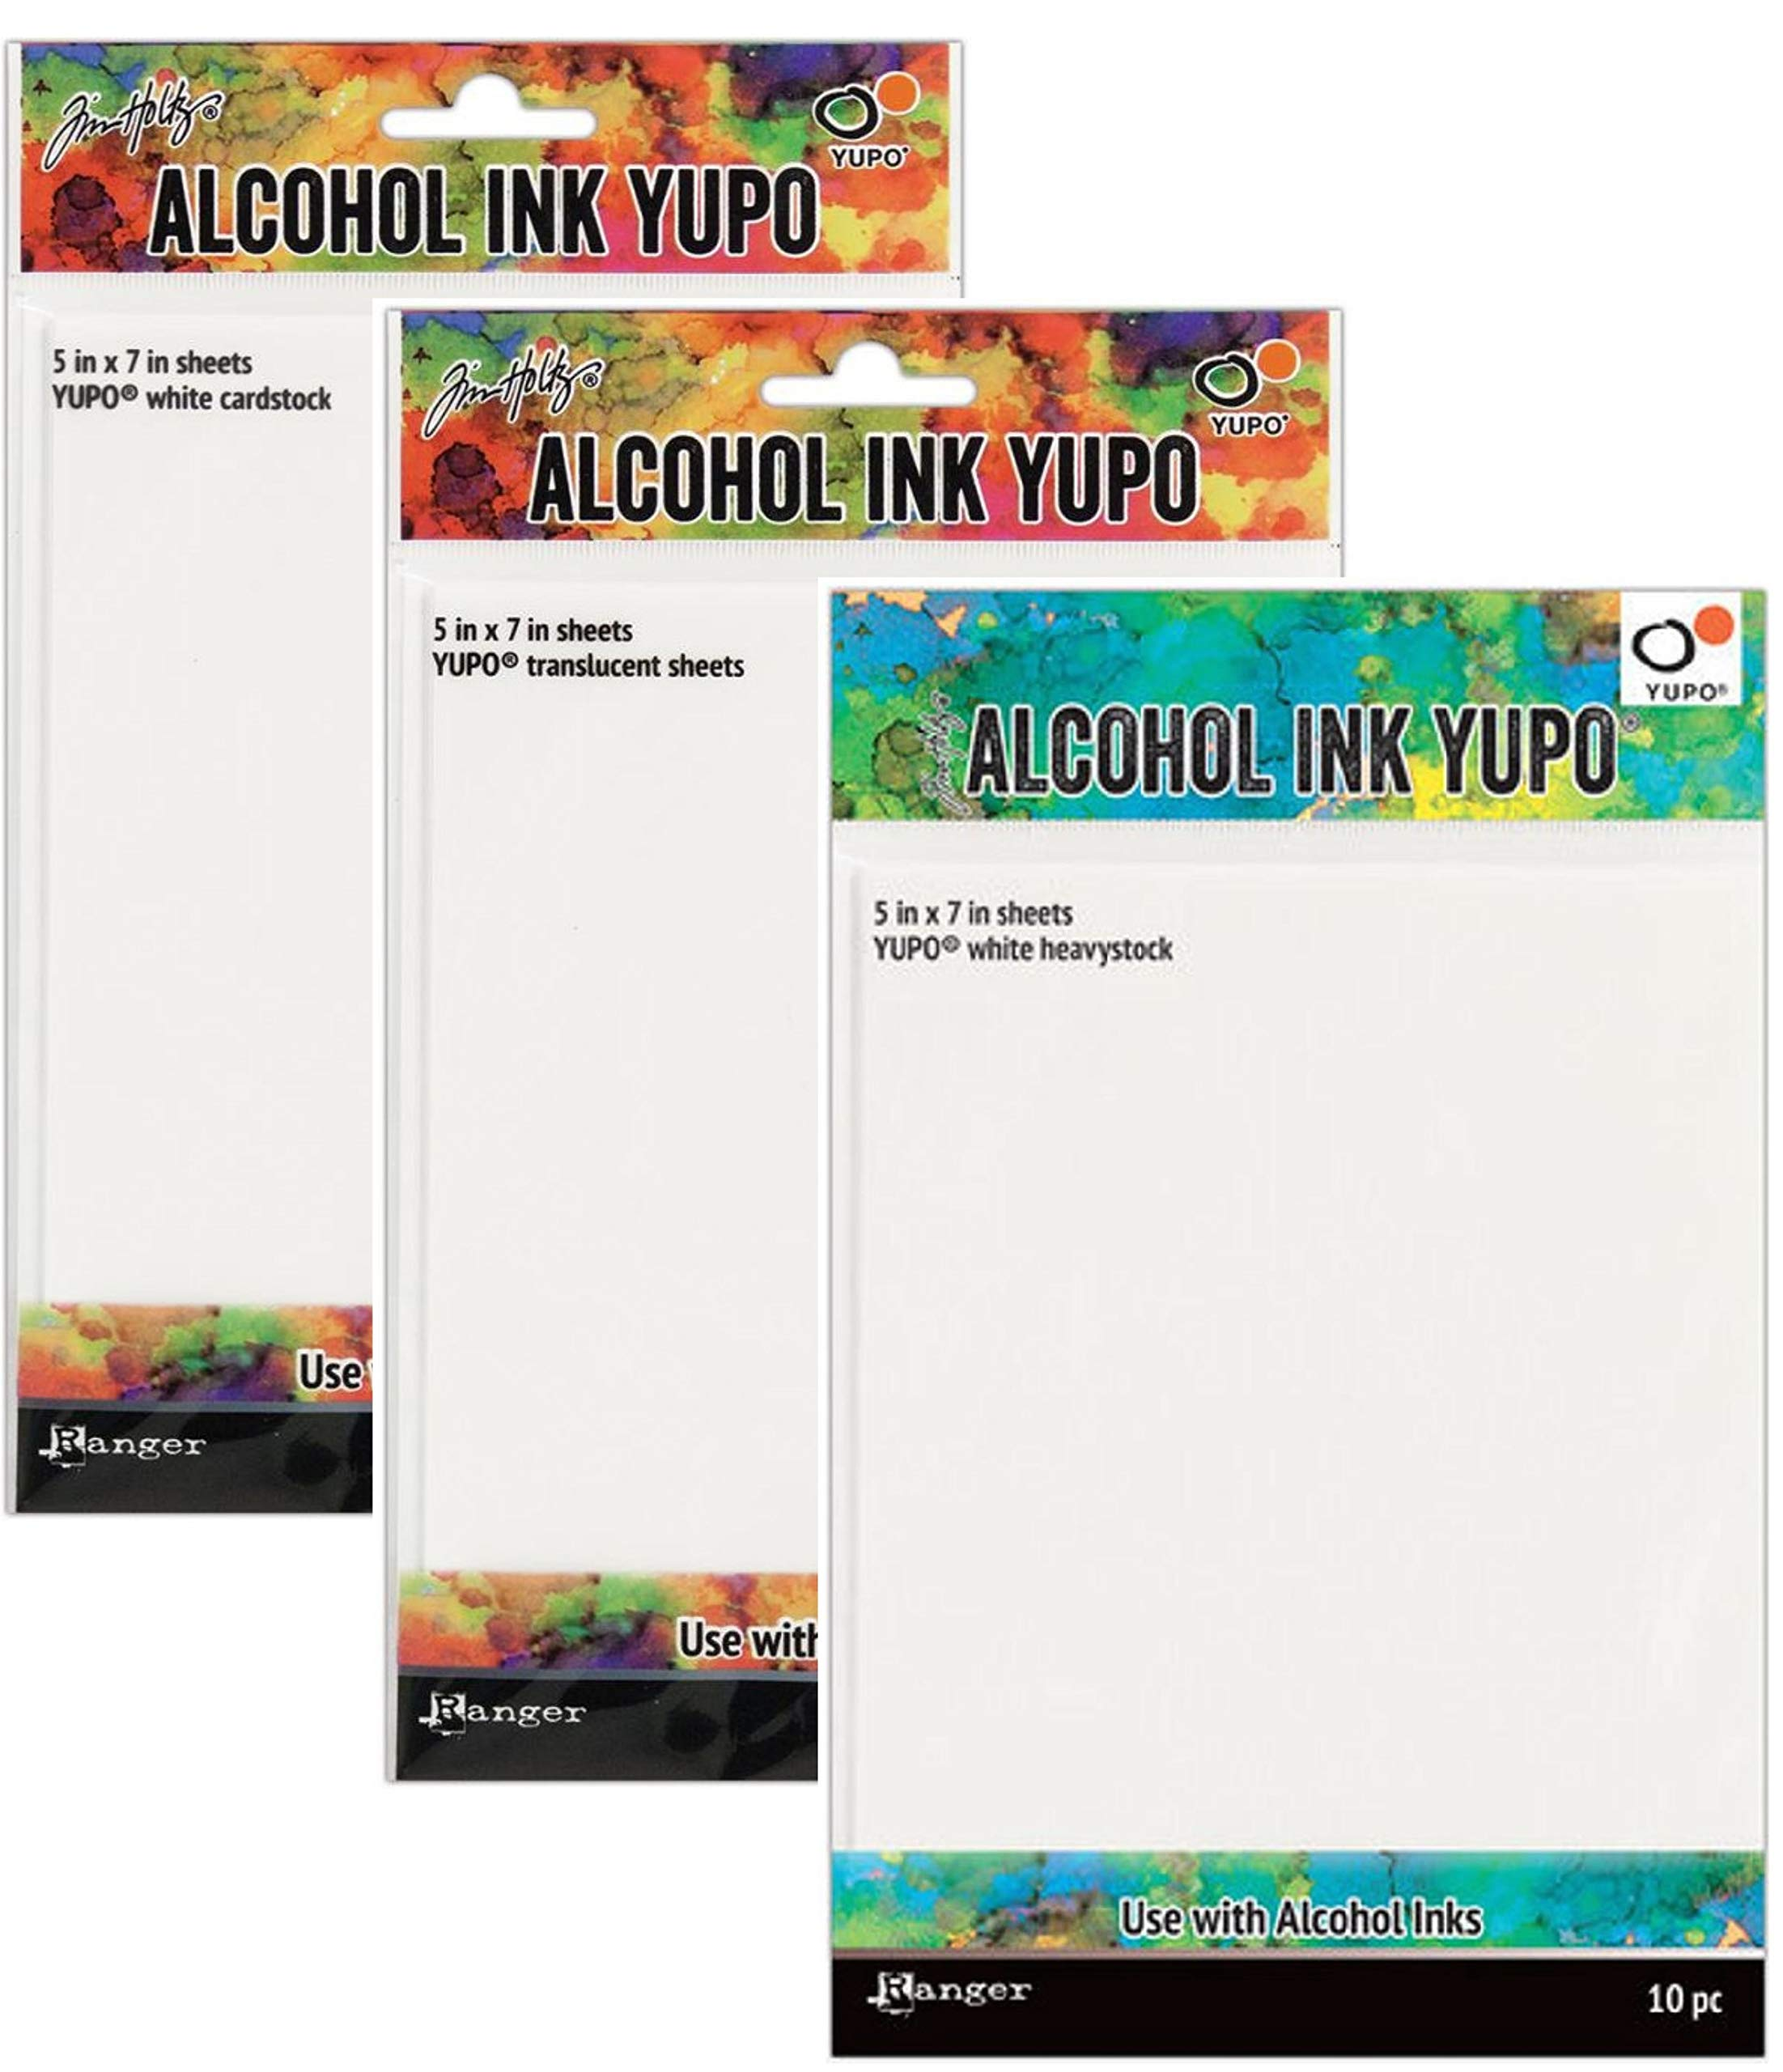 Tim Holtz Bundle of 3 Packages of Yupo Paper, White Heavystock, White Cardstock, Translucent Sheets, 10 (5''x7'') Sheets Each Package